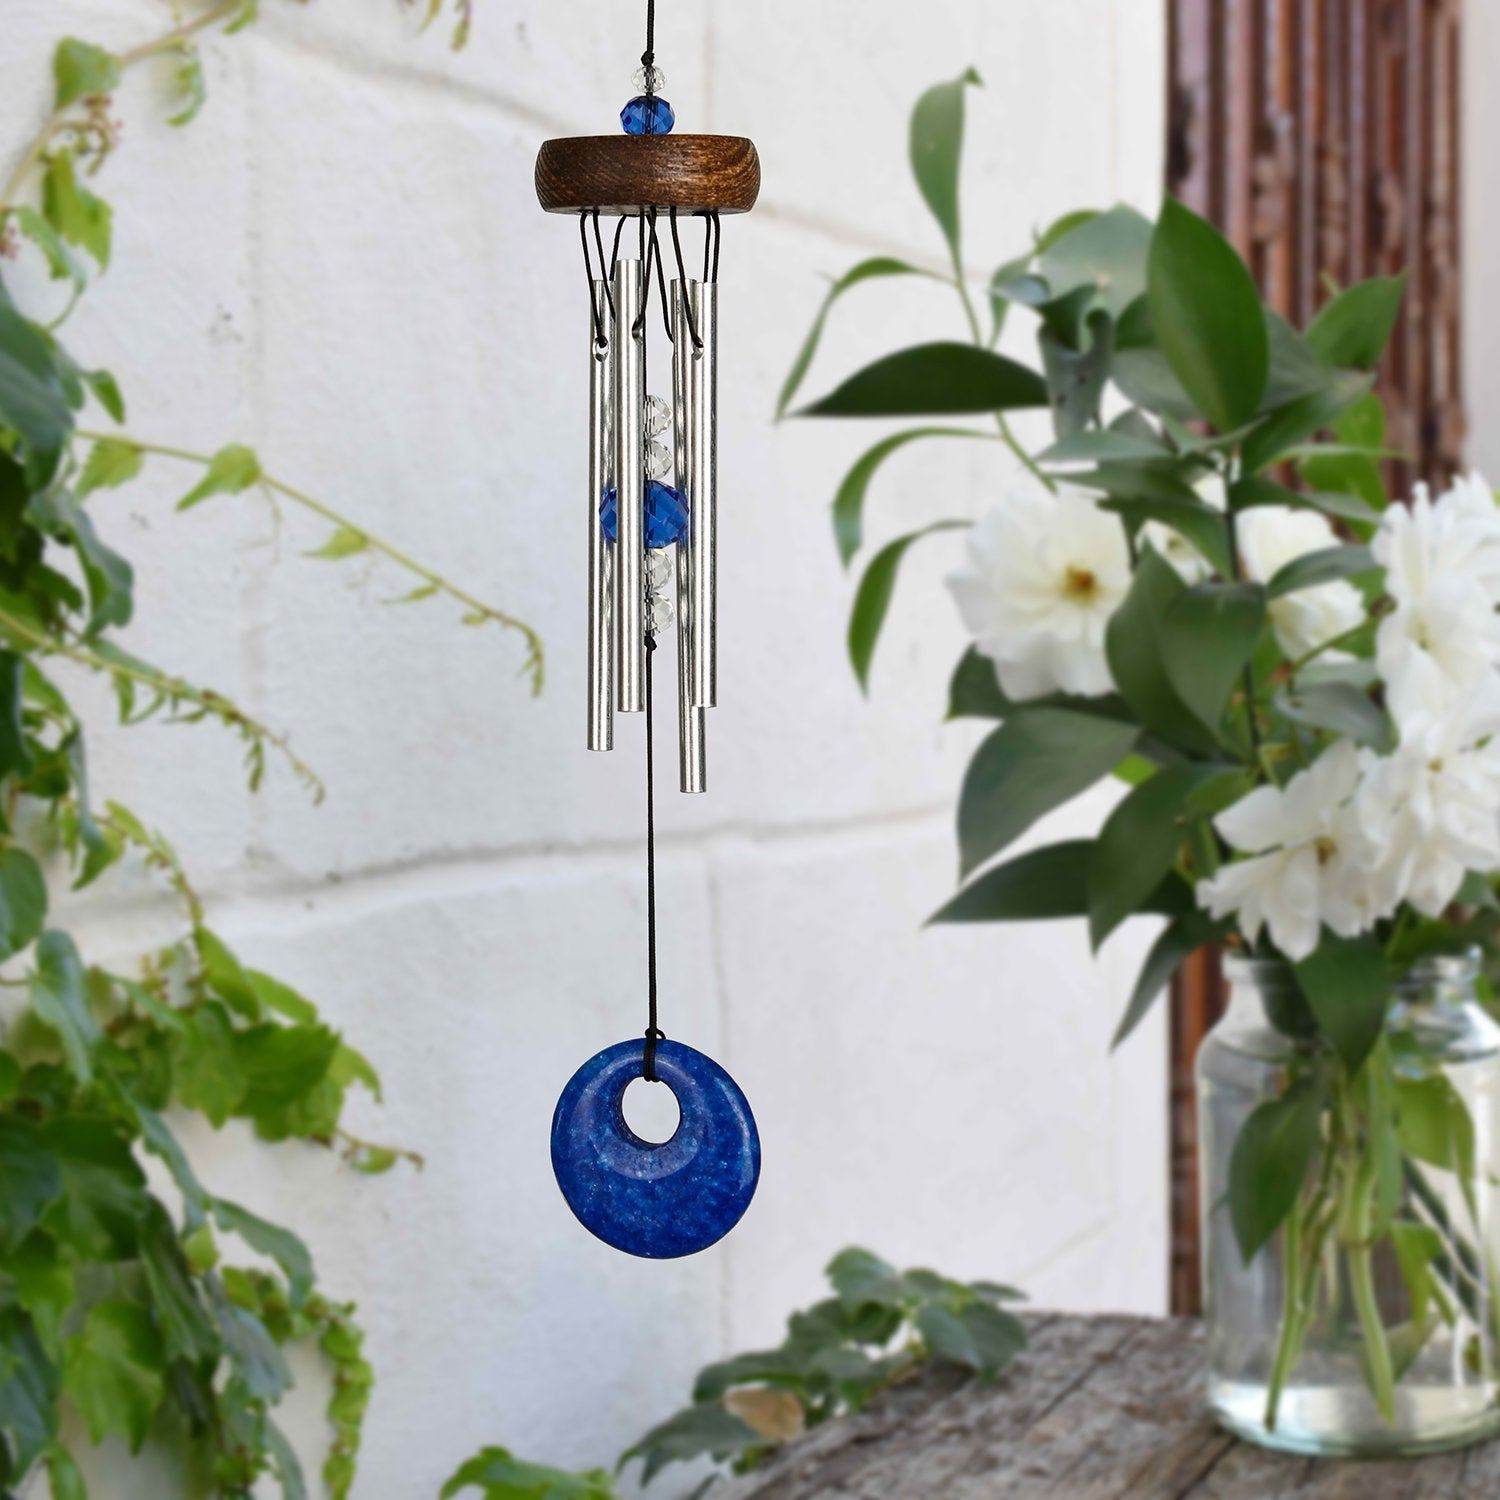 Mini Stone Chime - Blue lifestyle image